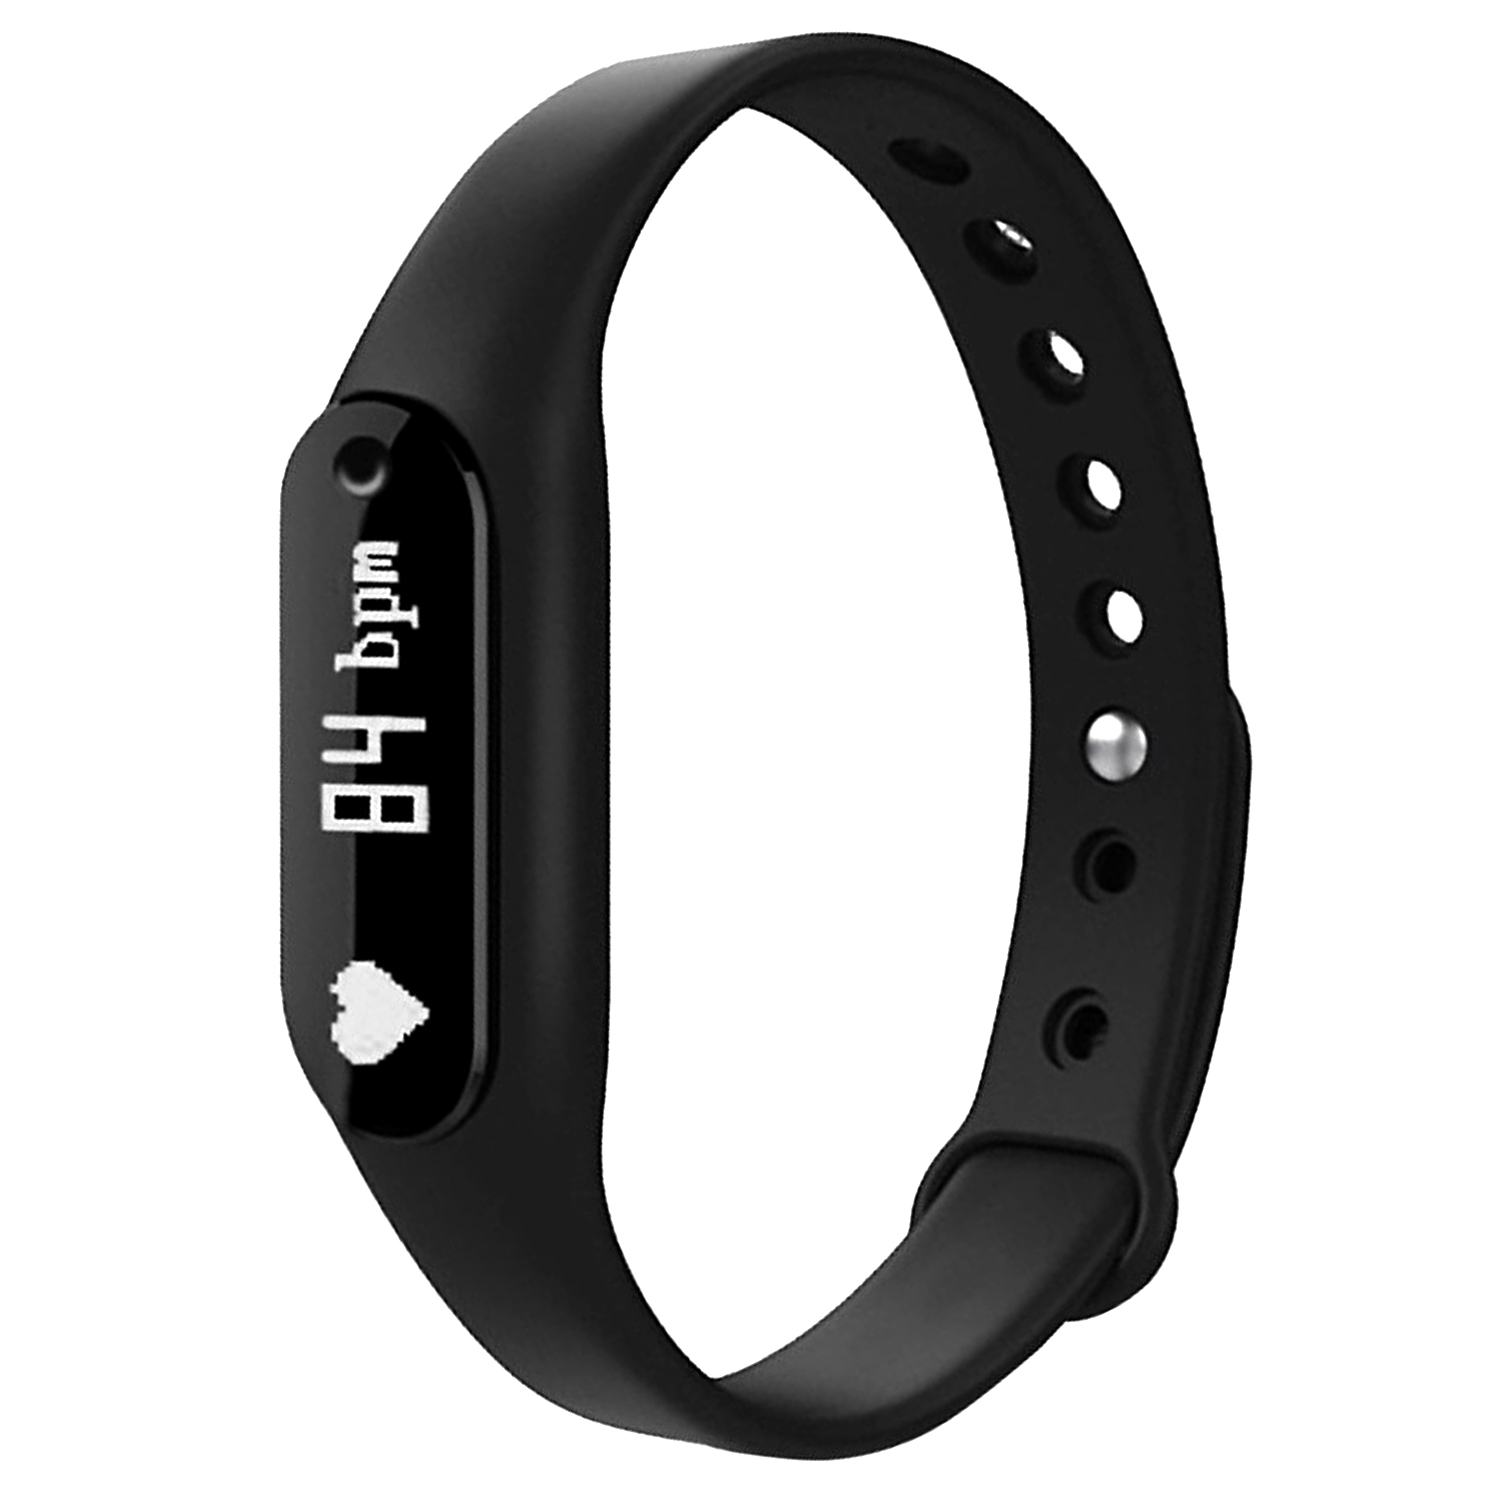 Agptek Smart Fitness Activity Tracker With Heart Rate Smart Watch Wristband Bt 4 0 For Android